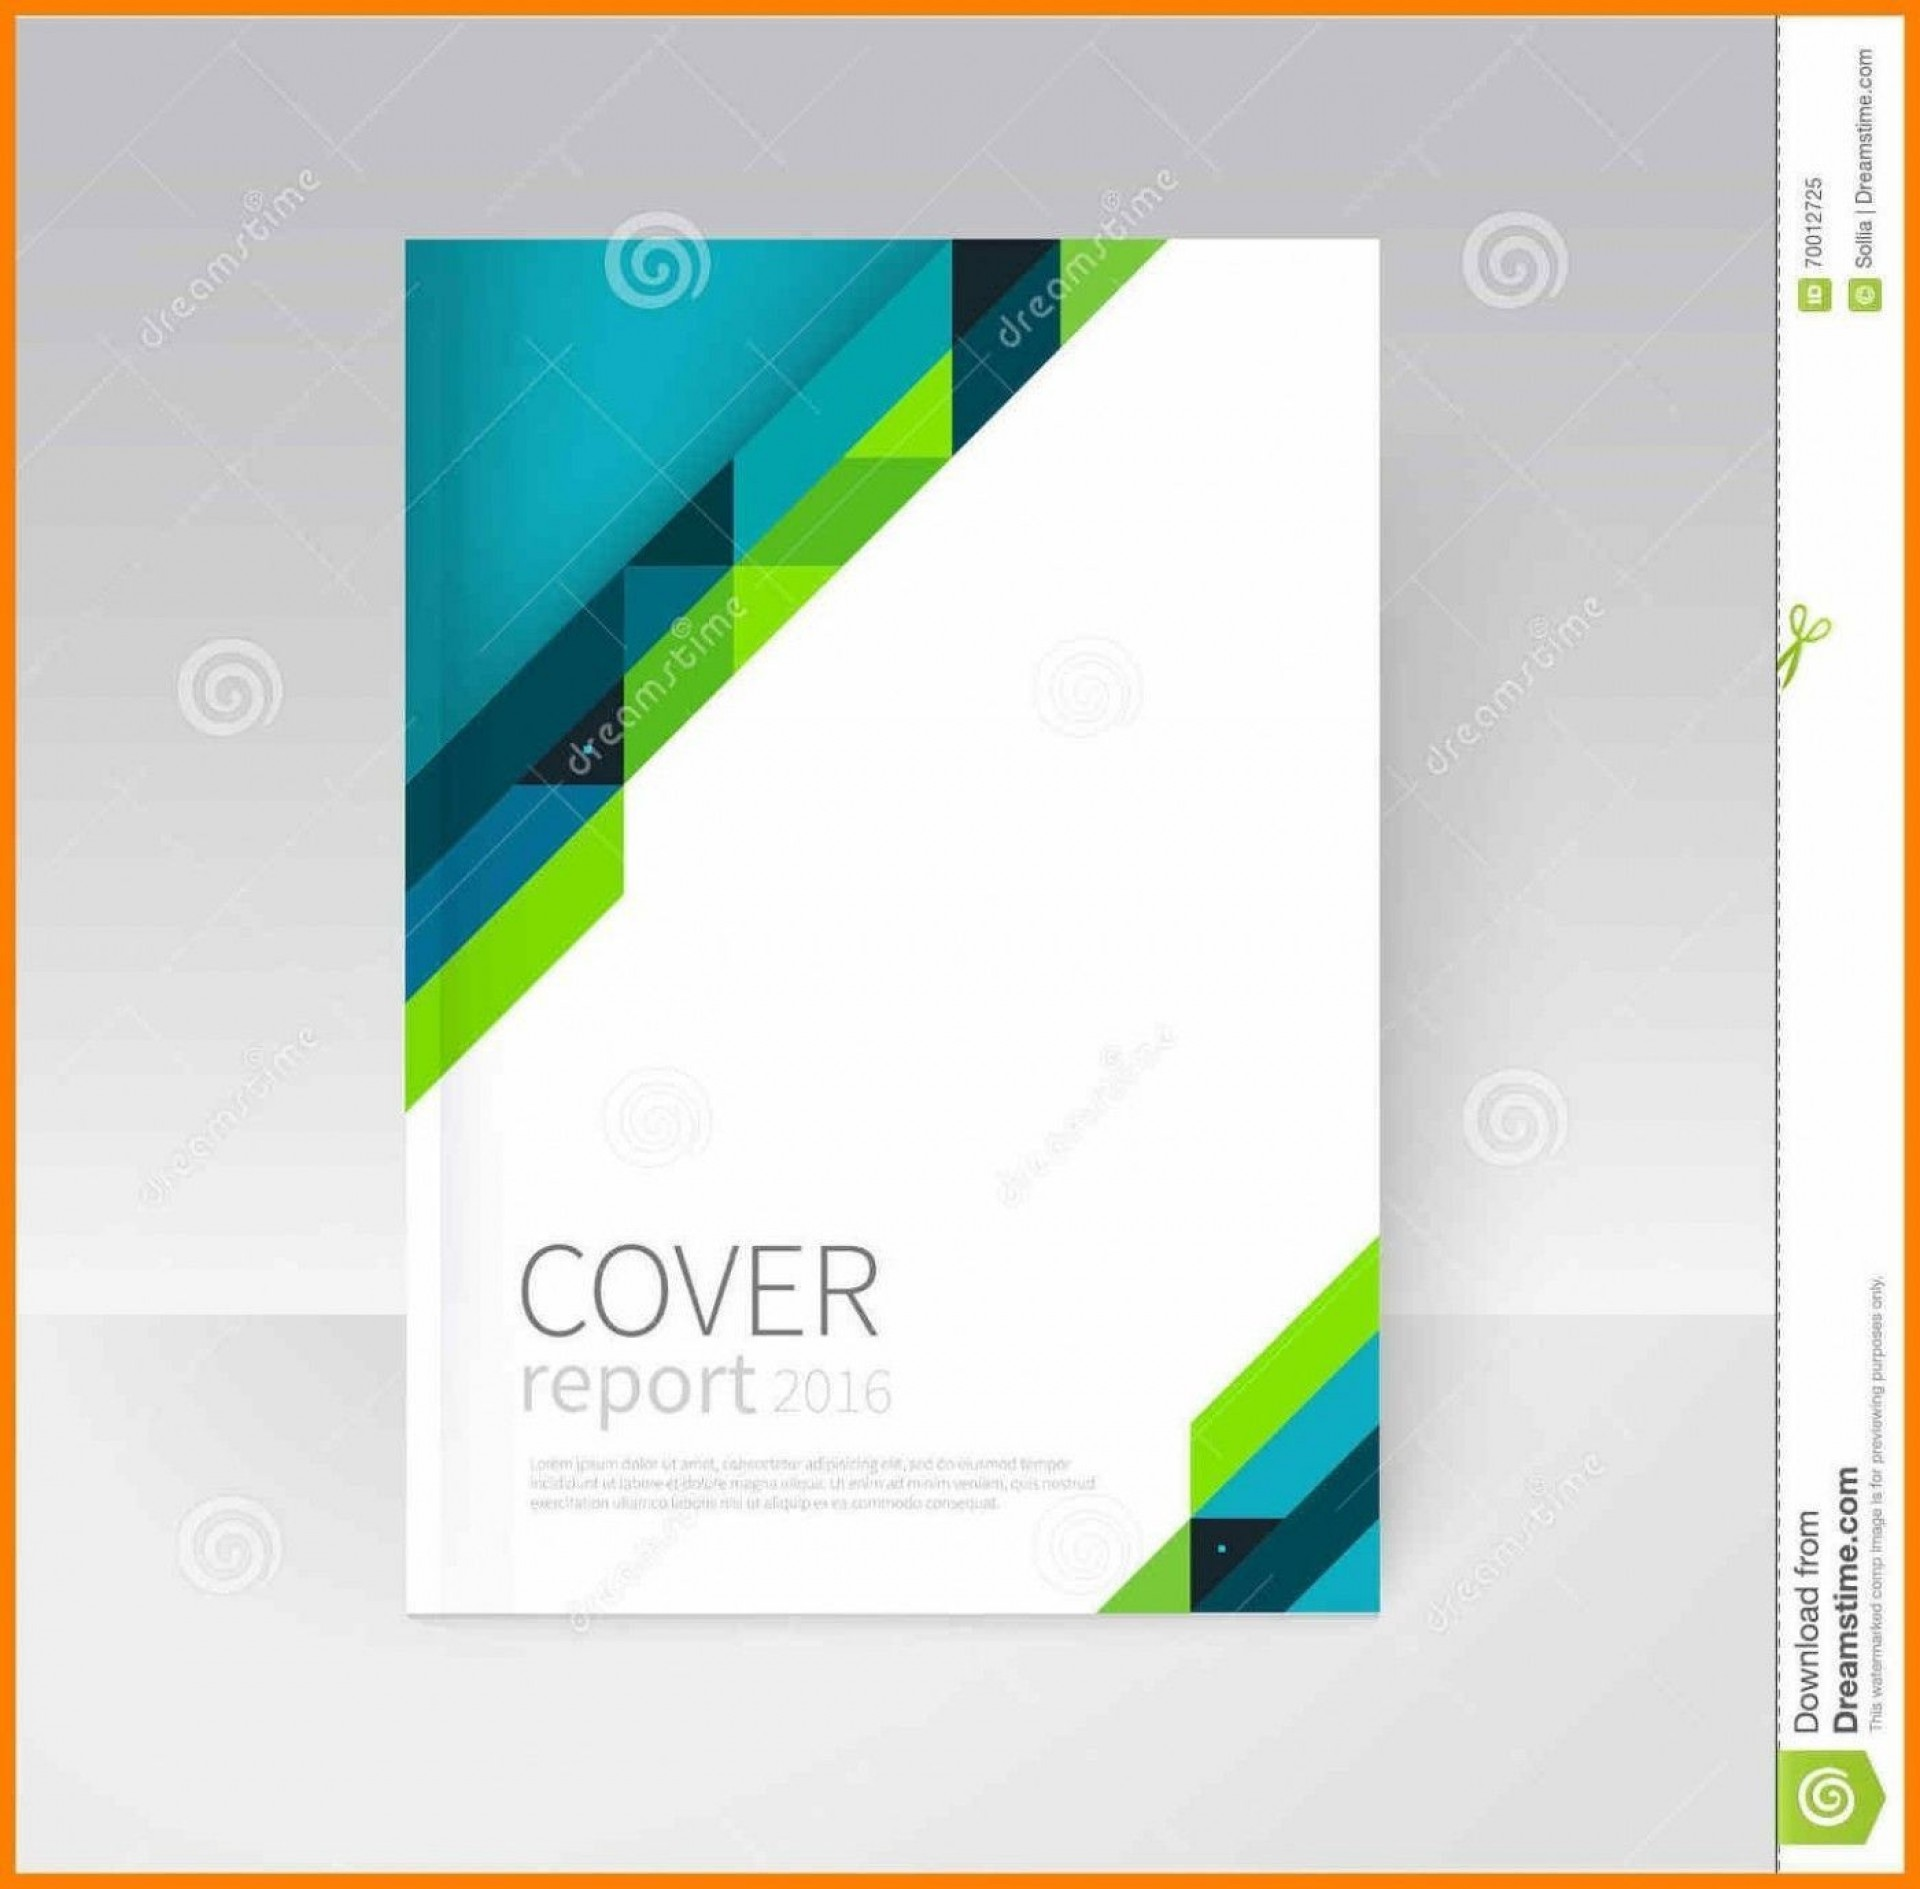 008 Beautiful Free Download Annual Report Cover Design Template Picture  In Word Page1920